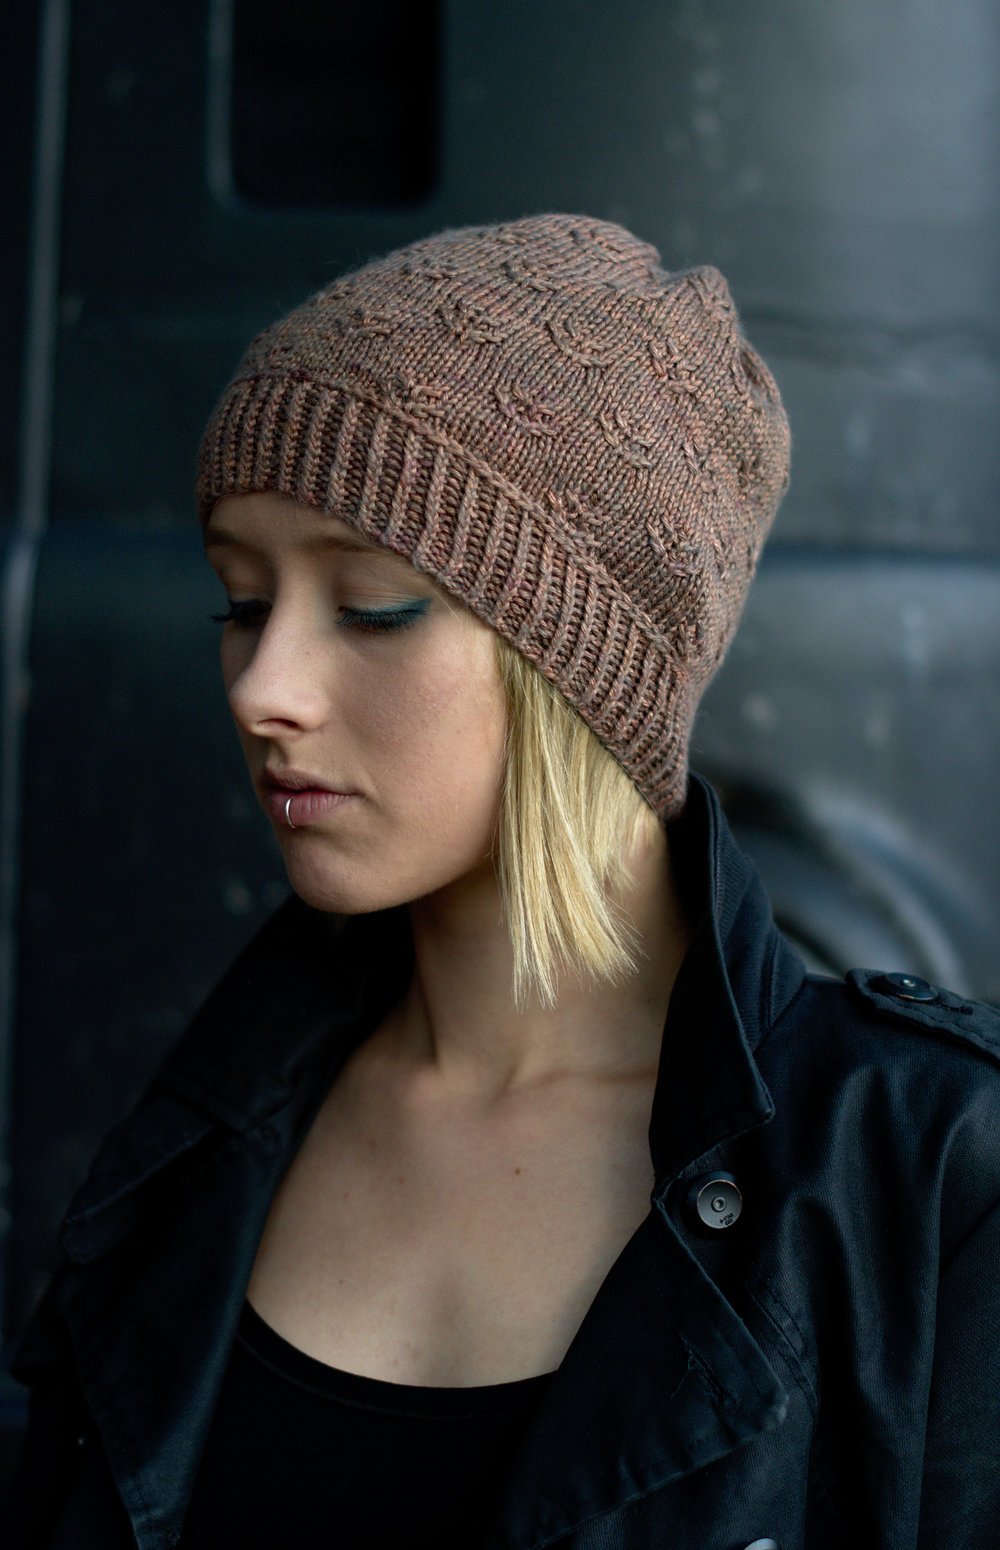 Ponderosa hand knit slouch beanie hat knitting pattern